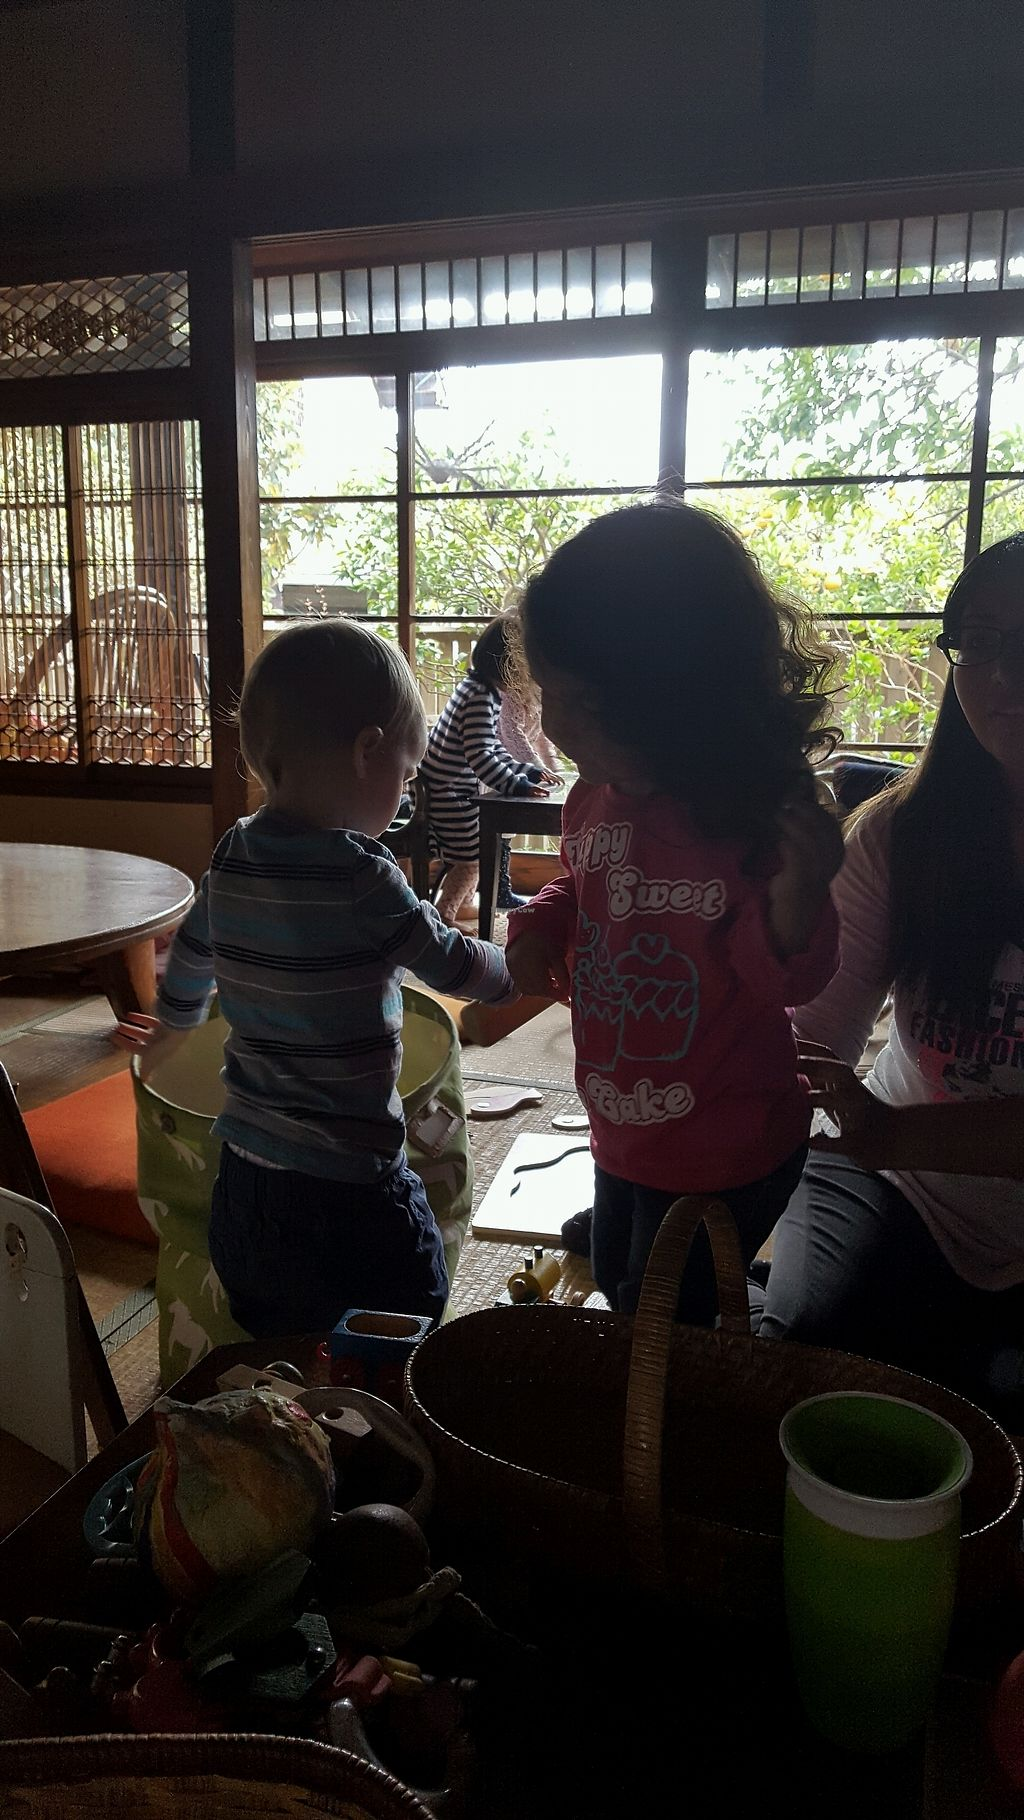 """Photo of Pace  by <a href=""""/members/profile/MelissaBlevens"""">MelissaBlevens</a> <br/>Toys in the main dining room for children <br/> March 24, 2018  - <a href='/contact/abuse/image/94047/375140'>Report</a>"""